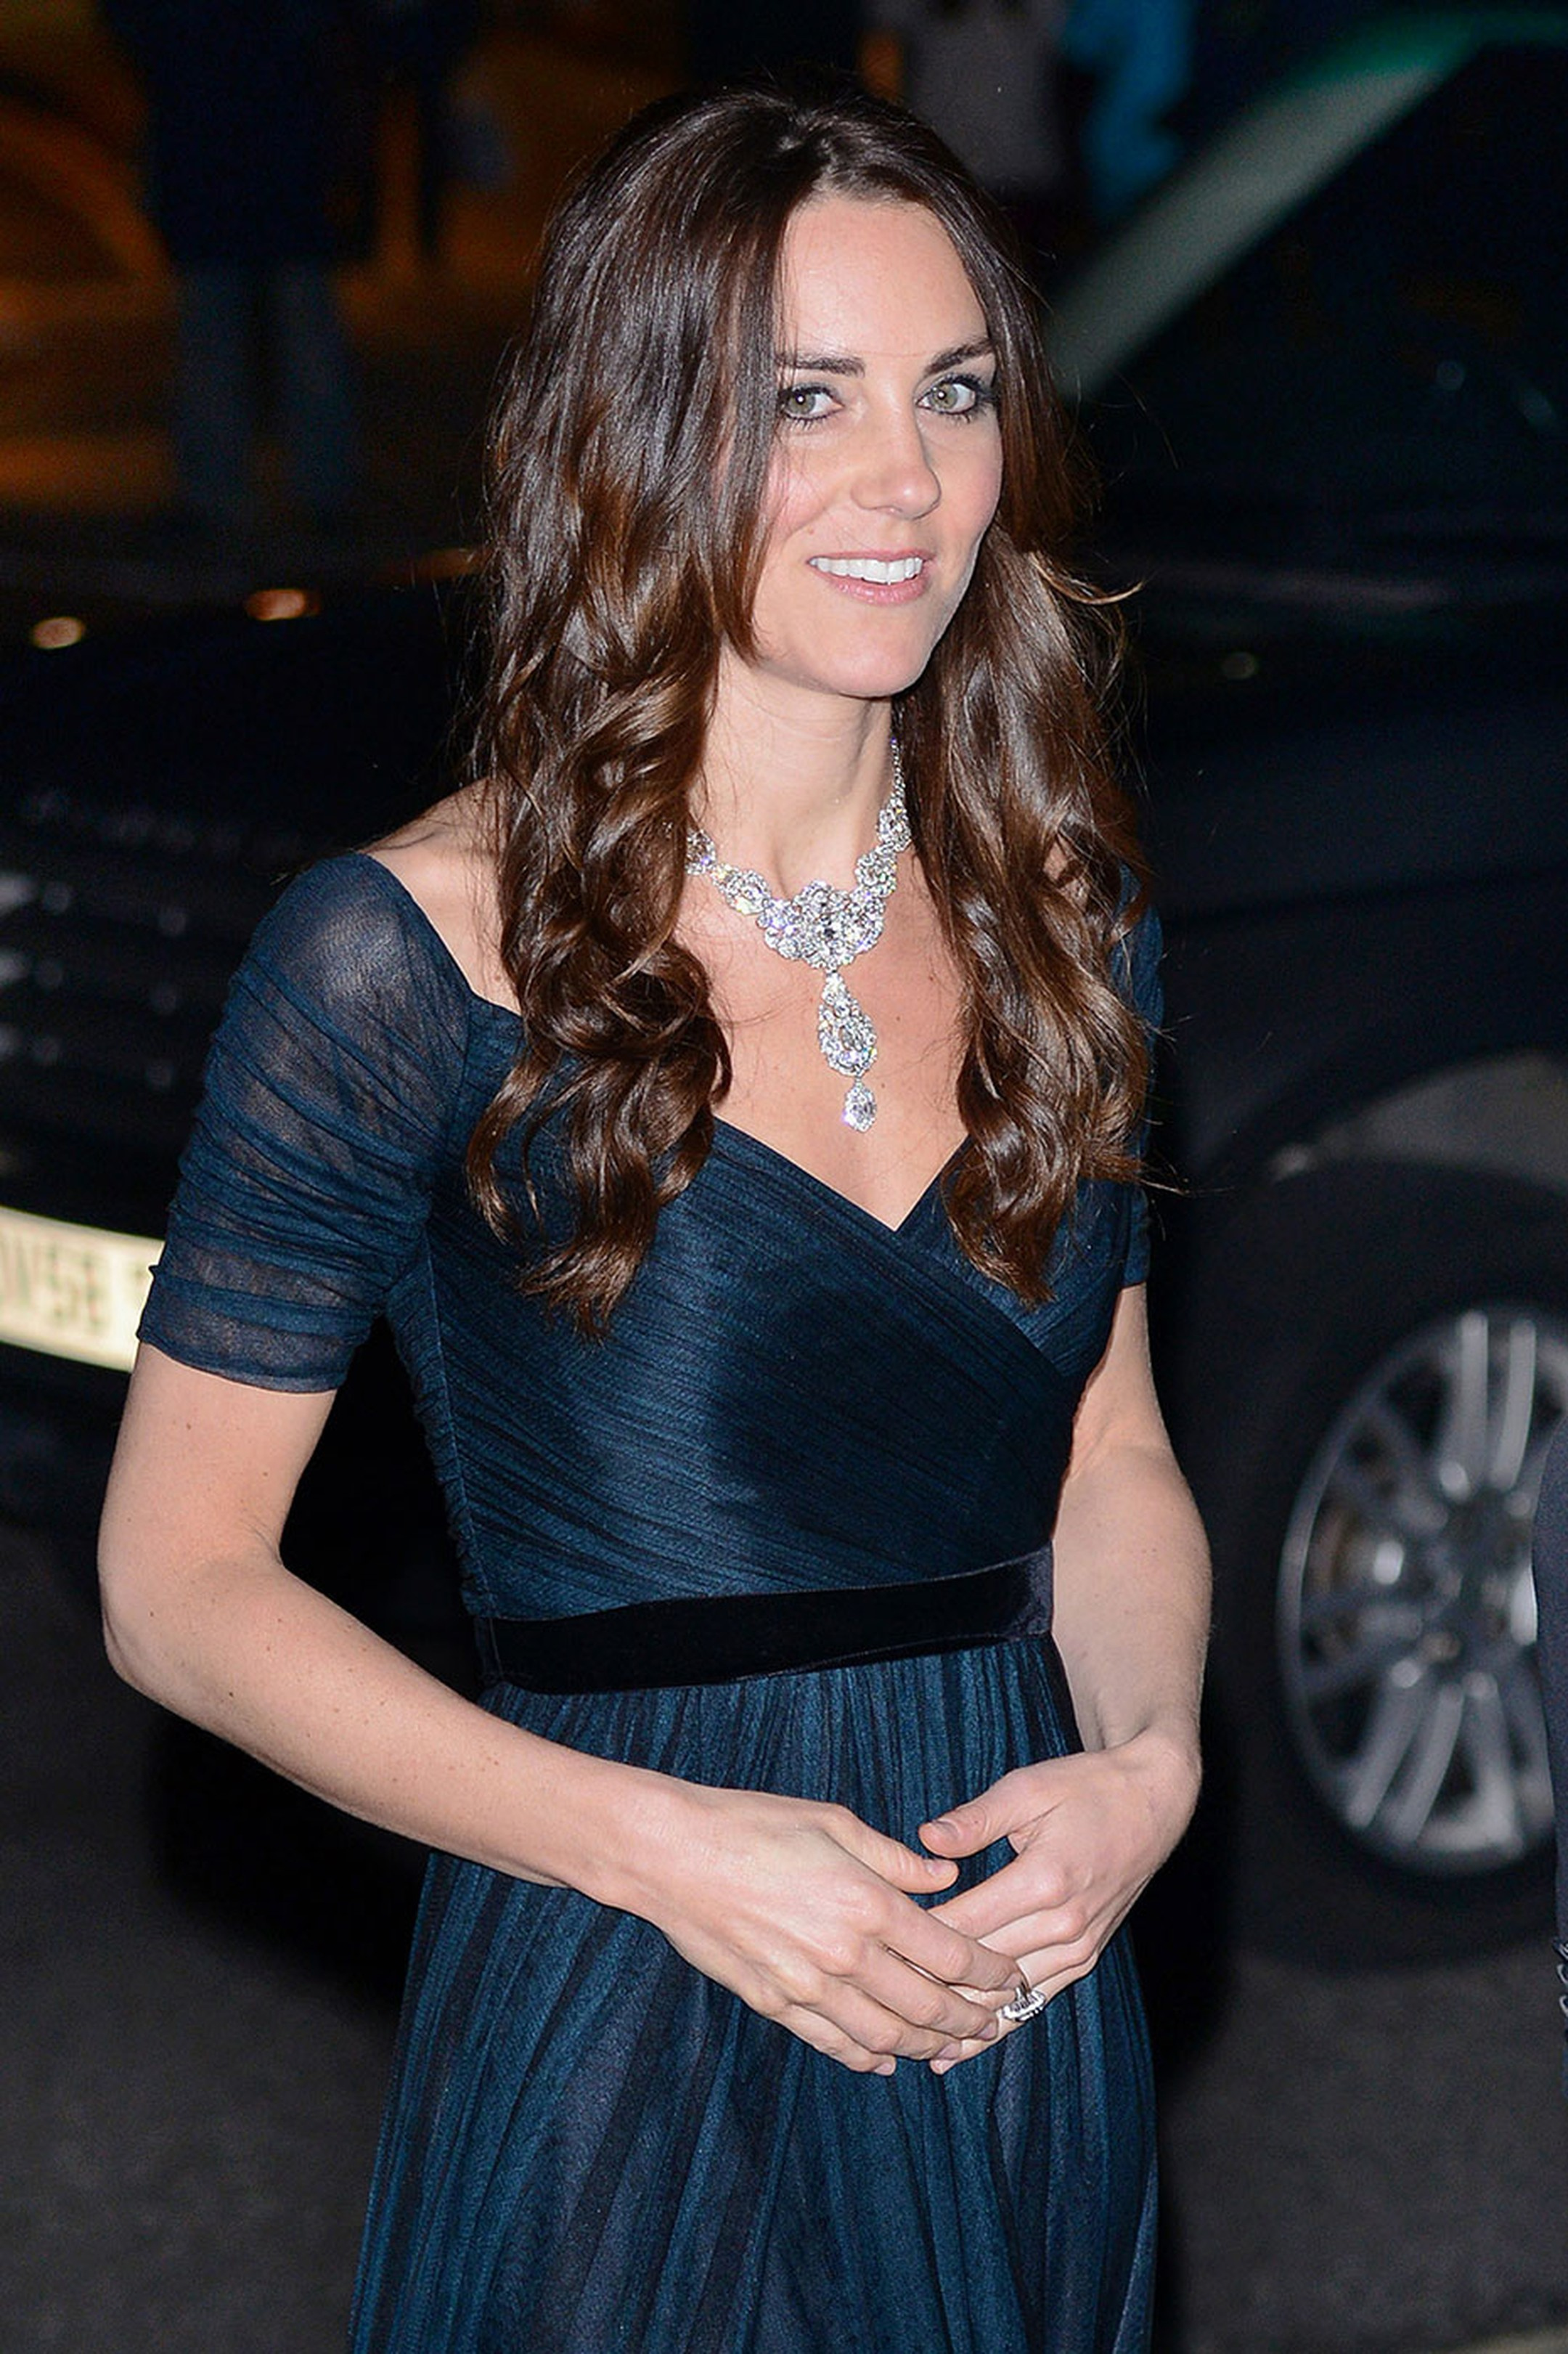 For her first royal engagement of 2014, Kate Middleton teamed a dark blue gown with an incredible diamond necklace by Cartier, loaned to her by the Queen